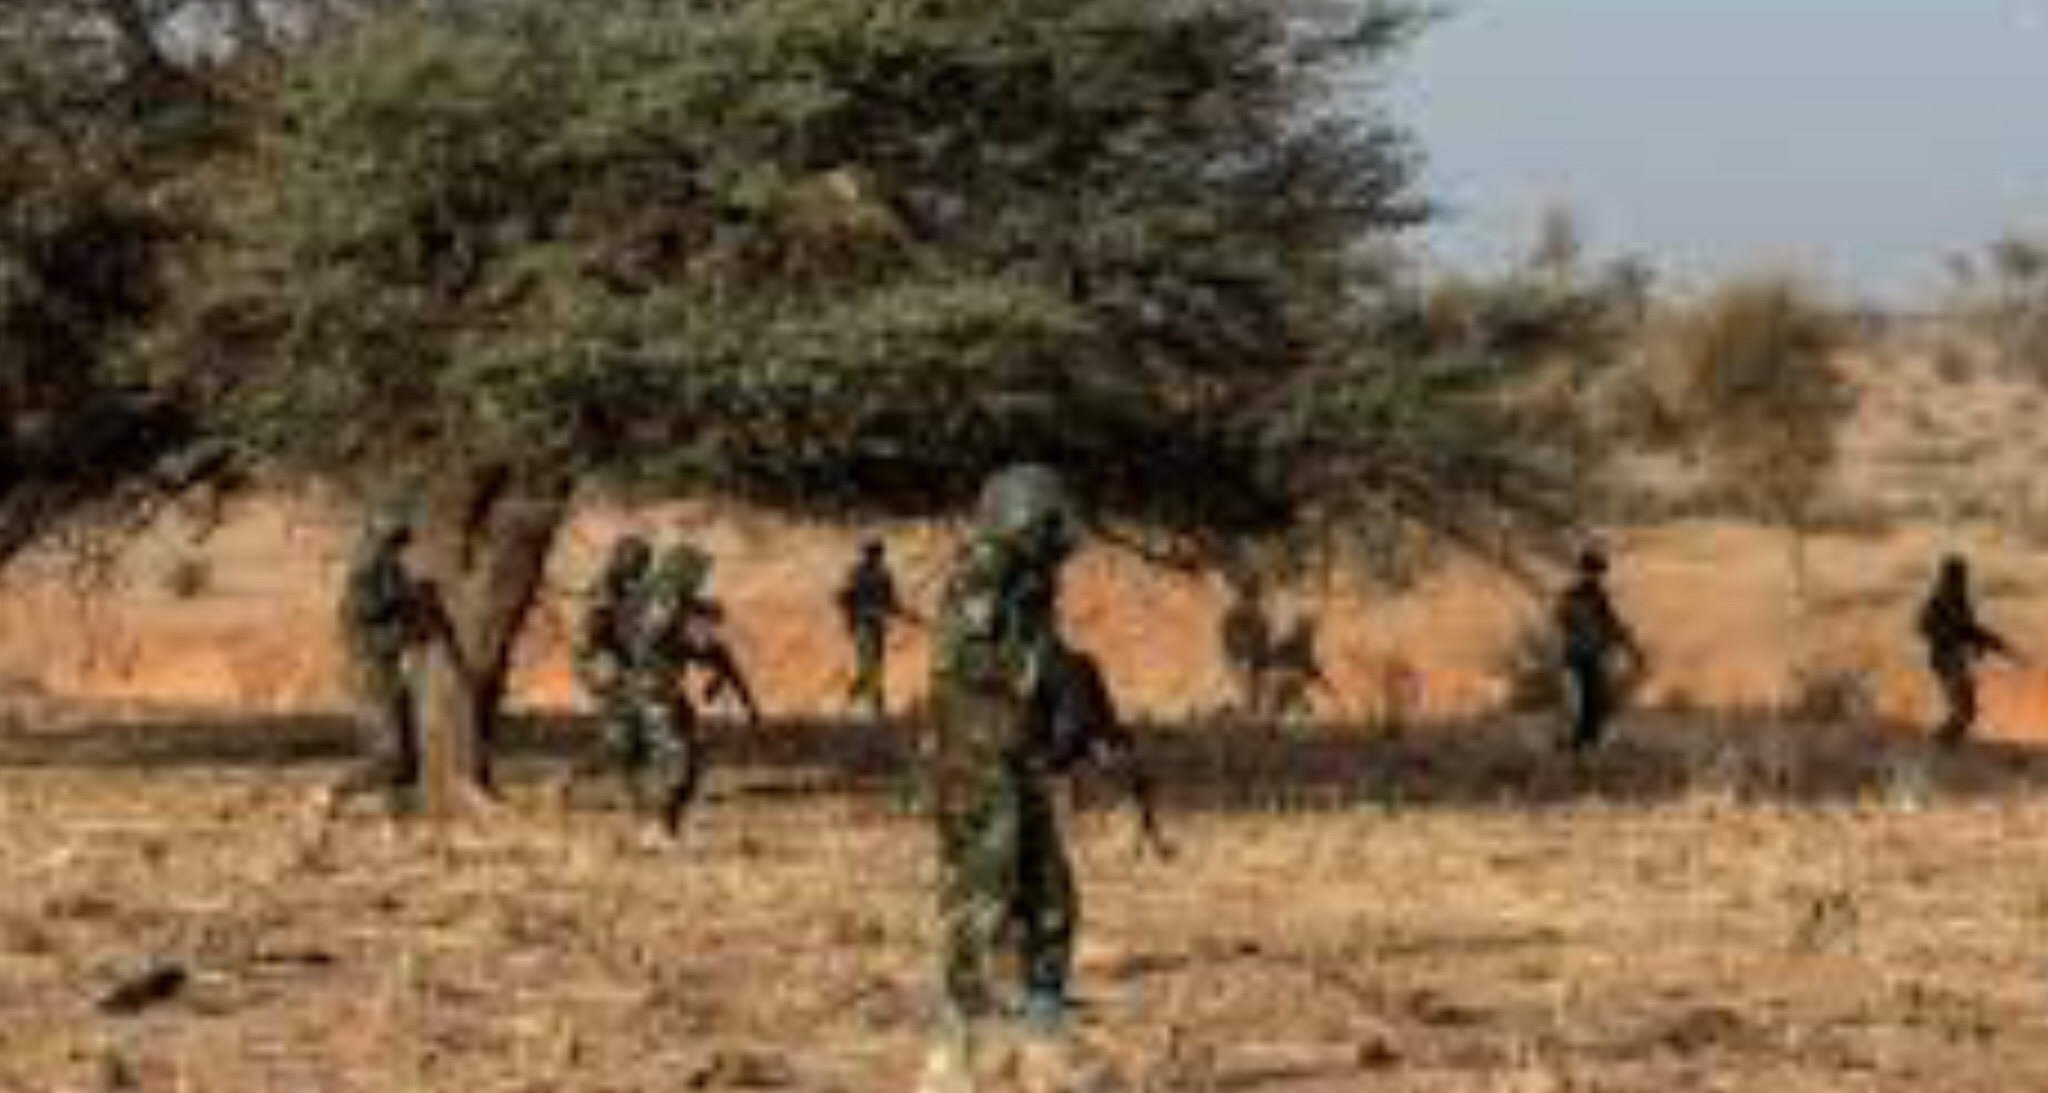 Niger soldiers killed and wounded